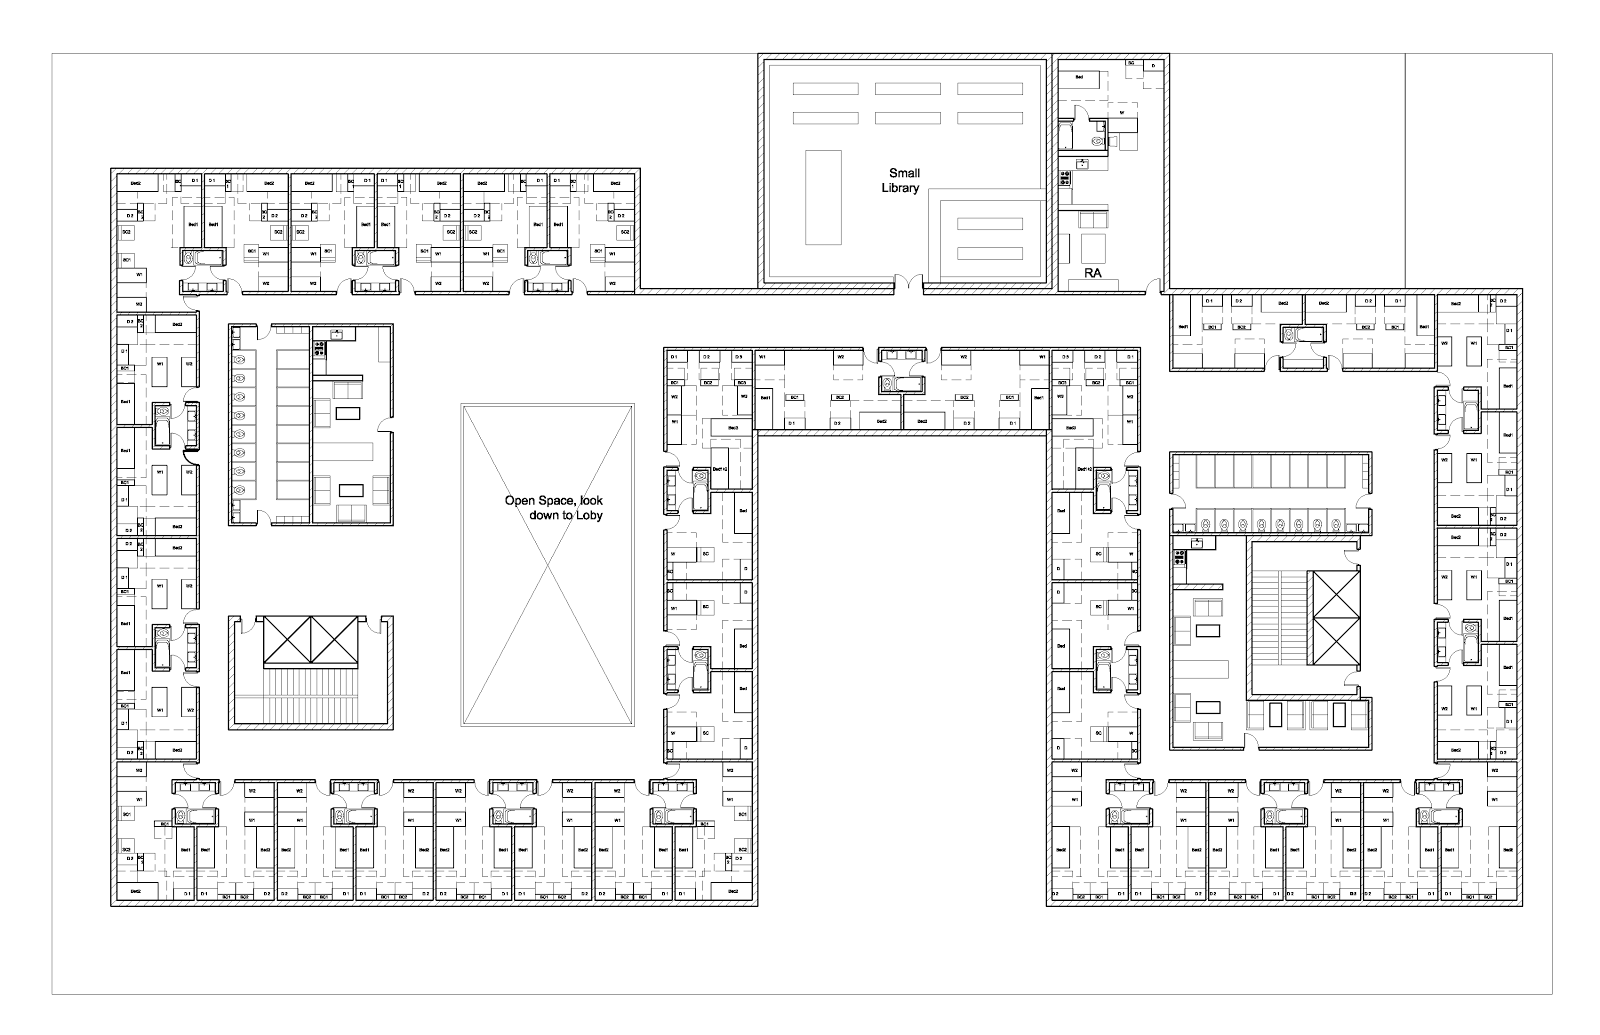 prison floor plan submited images